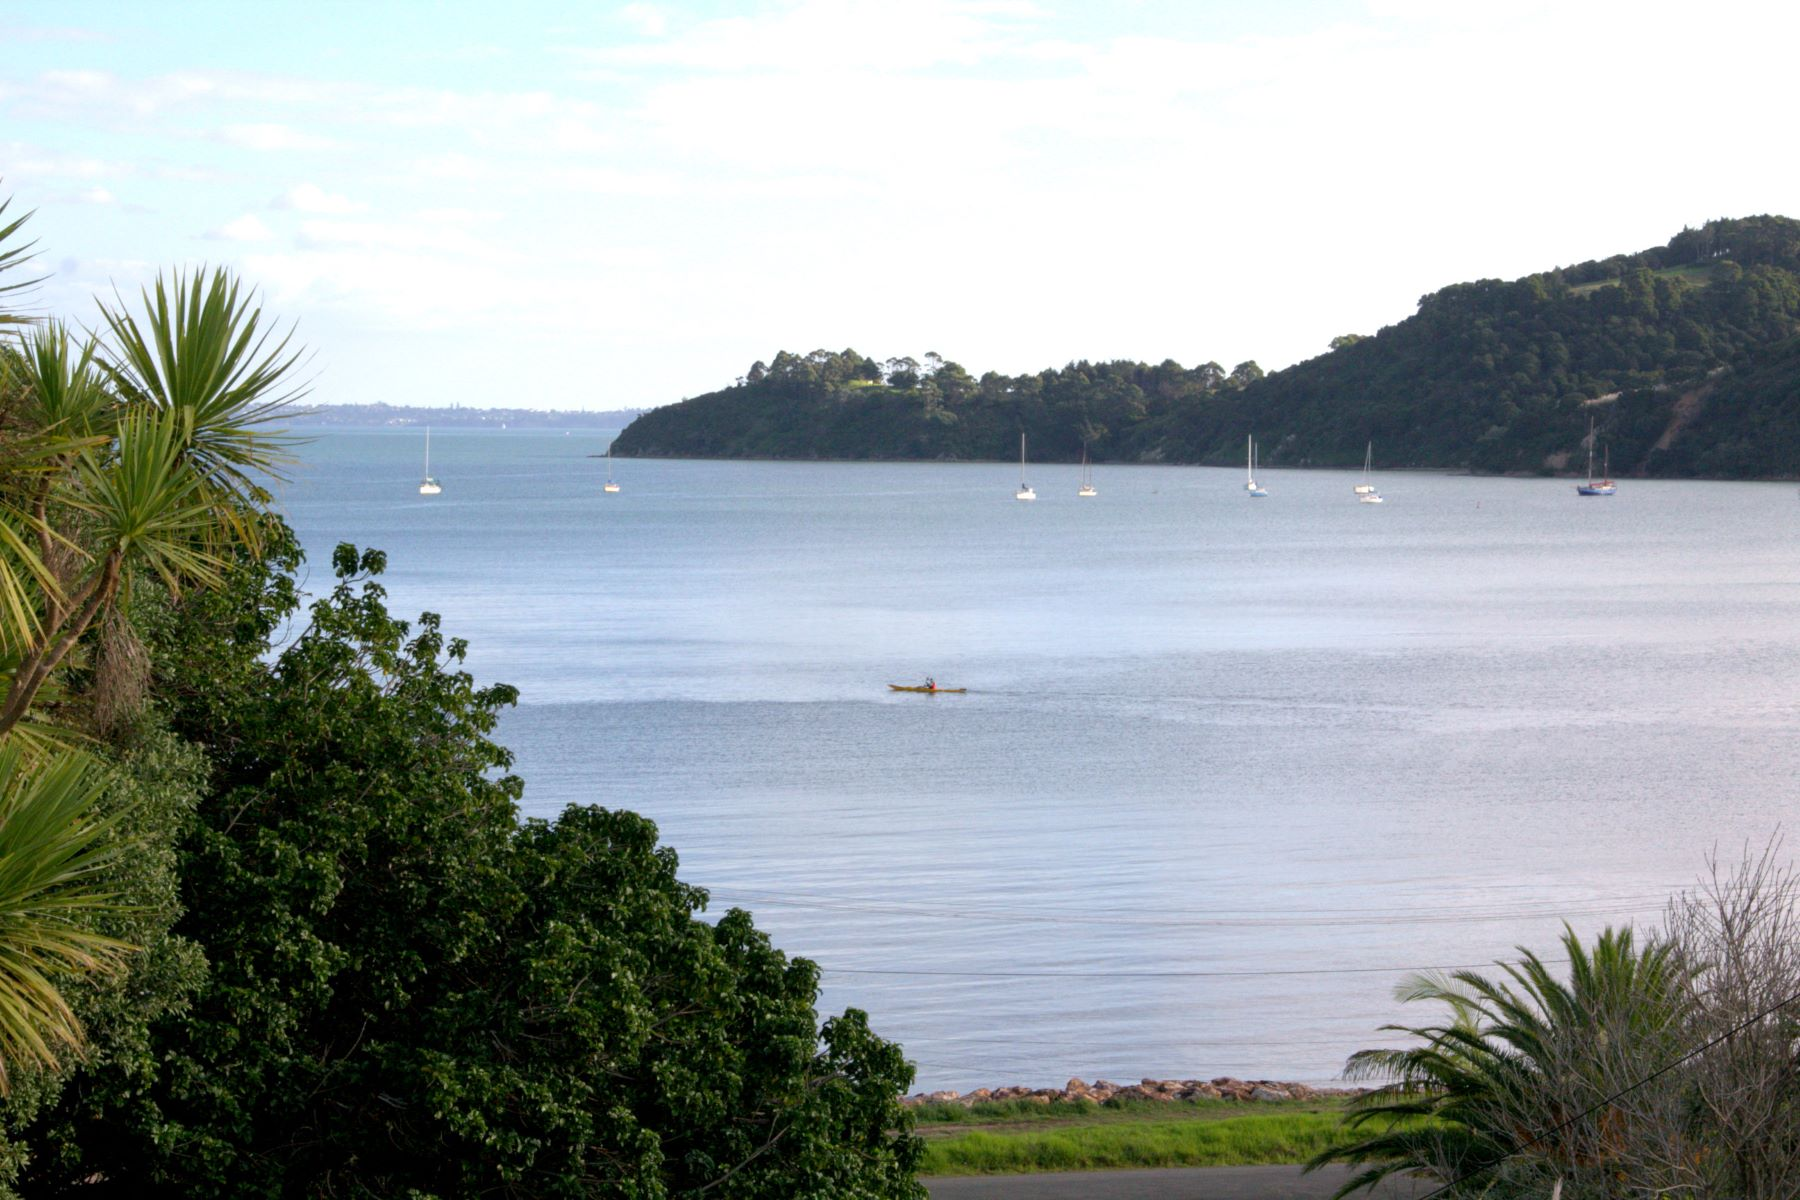 Multi-Family Home for Sale at 46 The Esplanade, Oneroa, Waiheke Island 46 The Esplanade Oneroa Auckland, Auckland, 1081 New Zealand